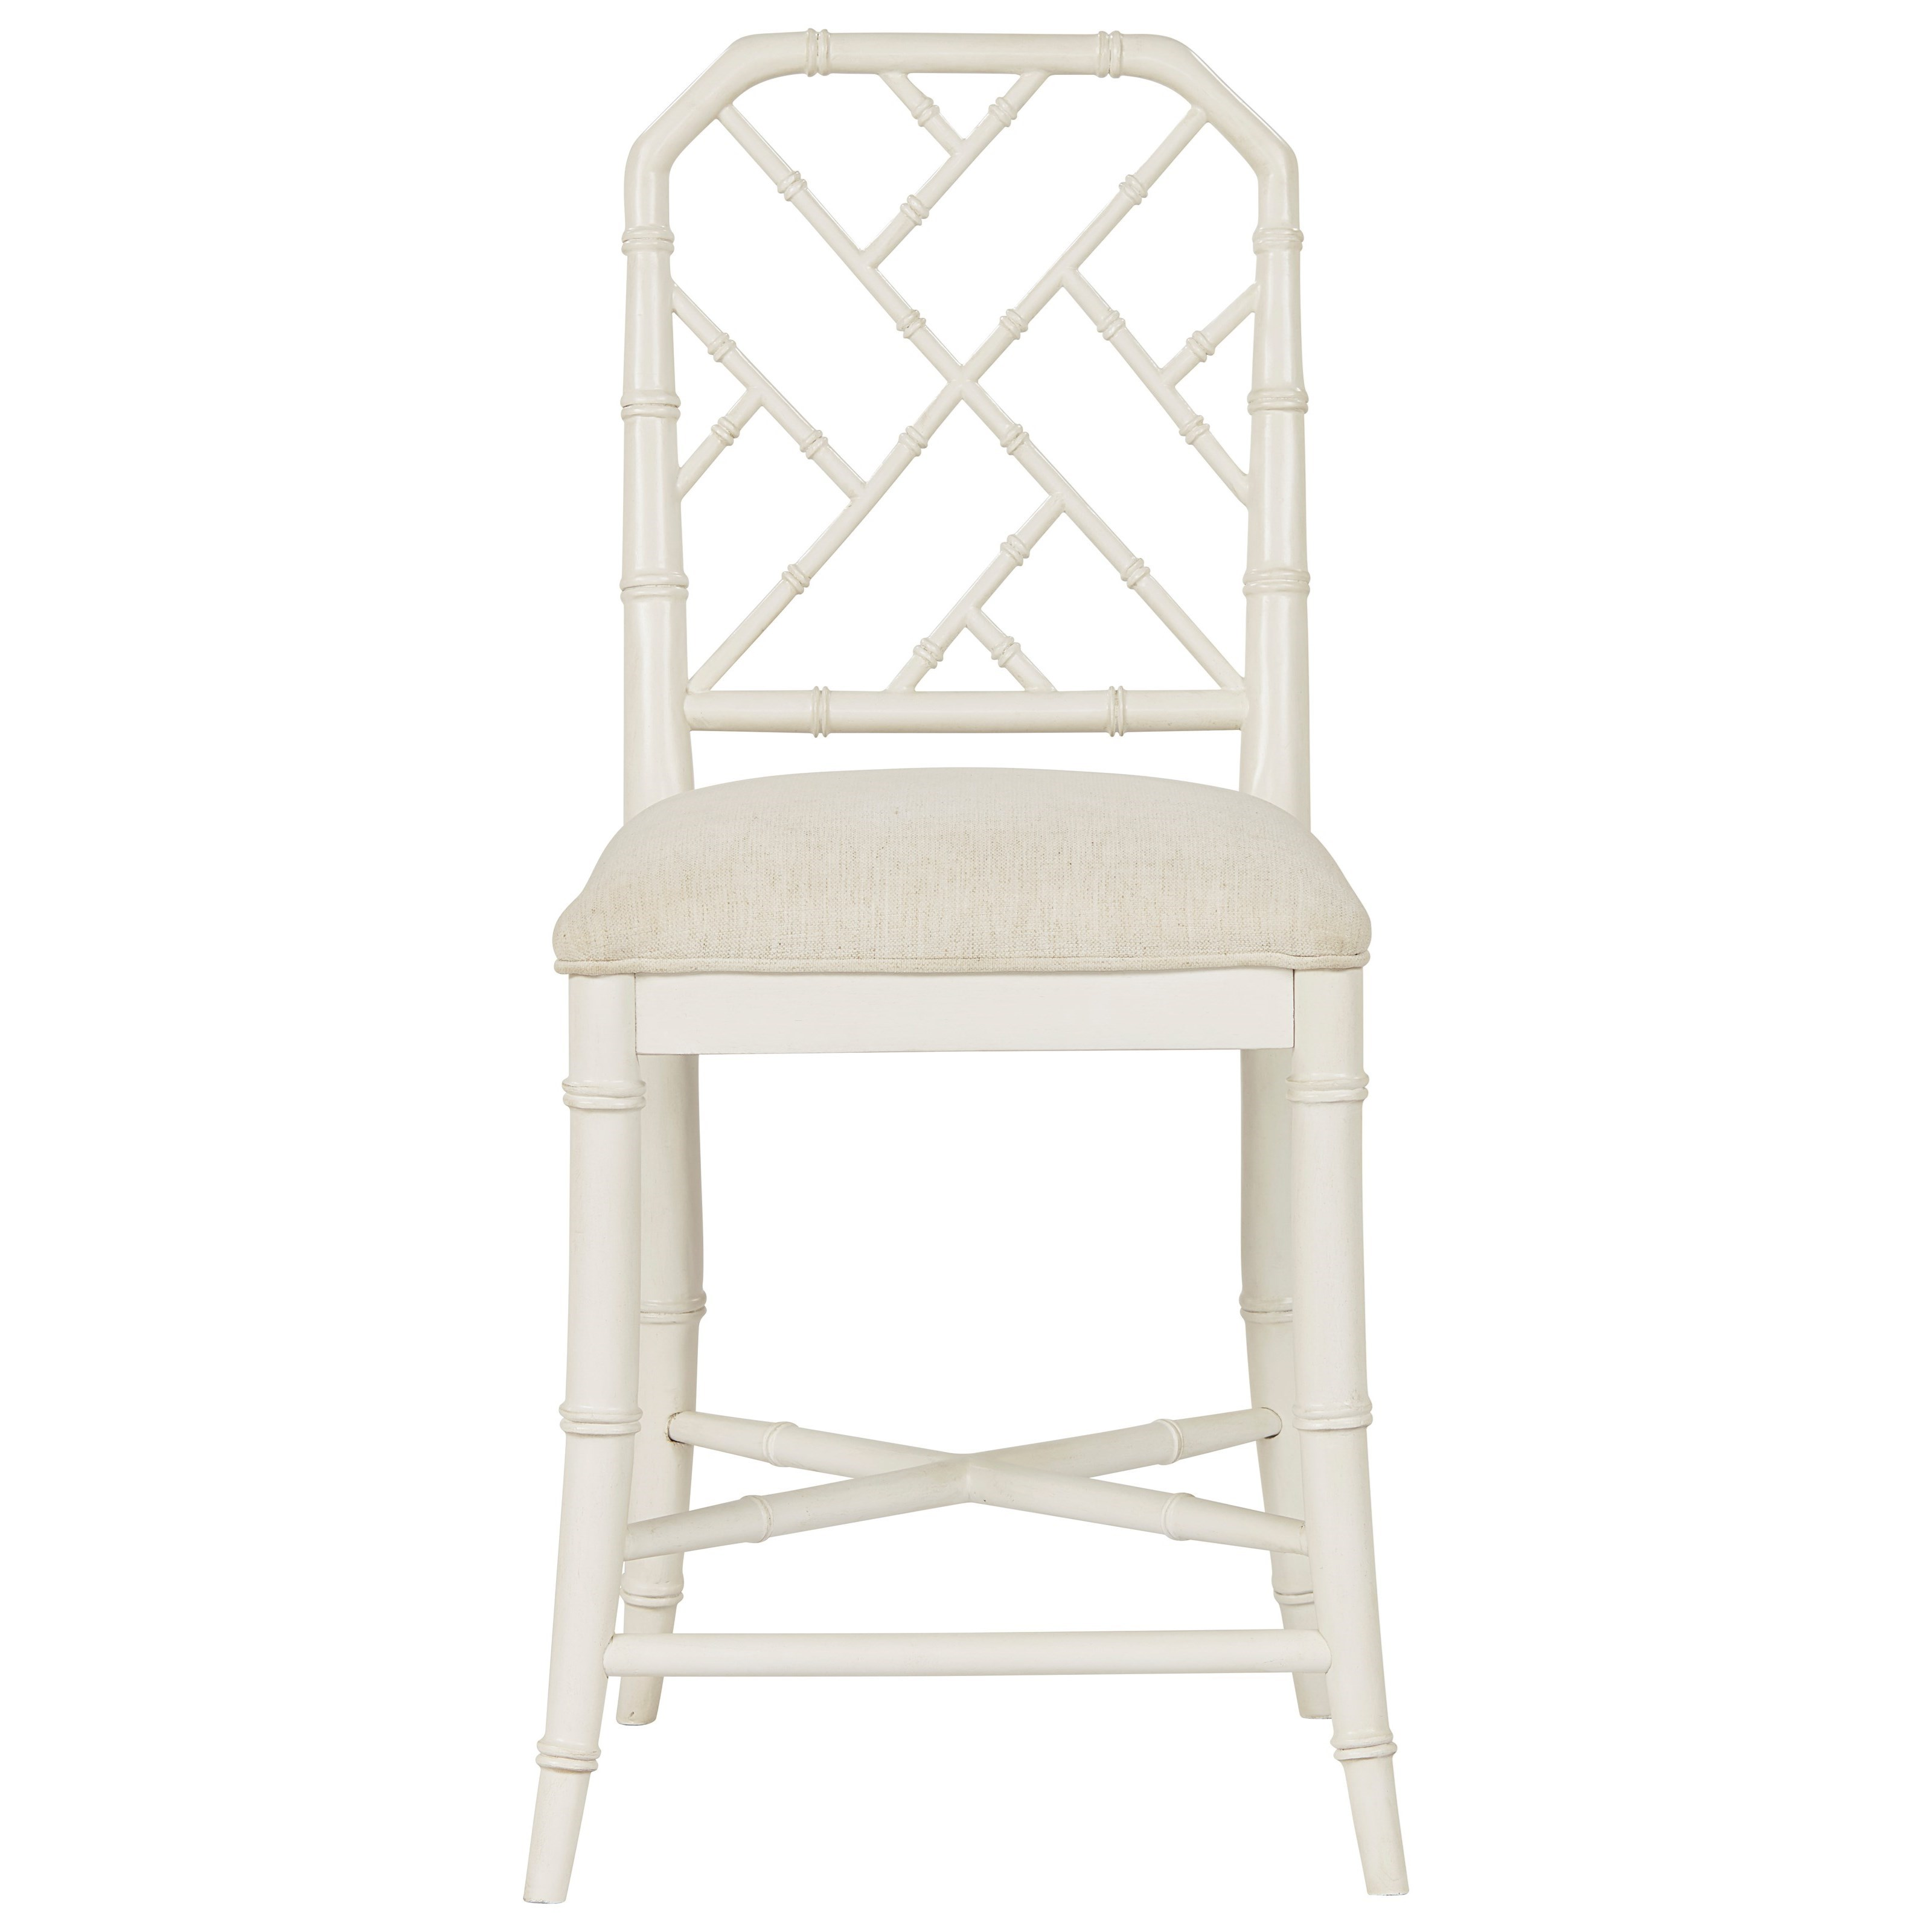 Coastal Living Home - Getaway Counter Chair by Universal at Baer's Furniture